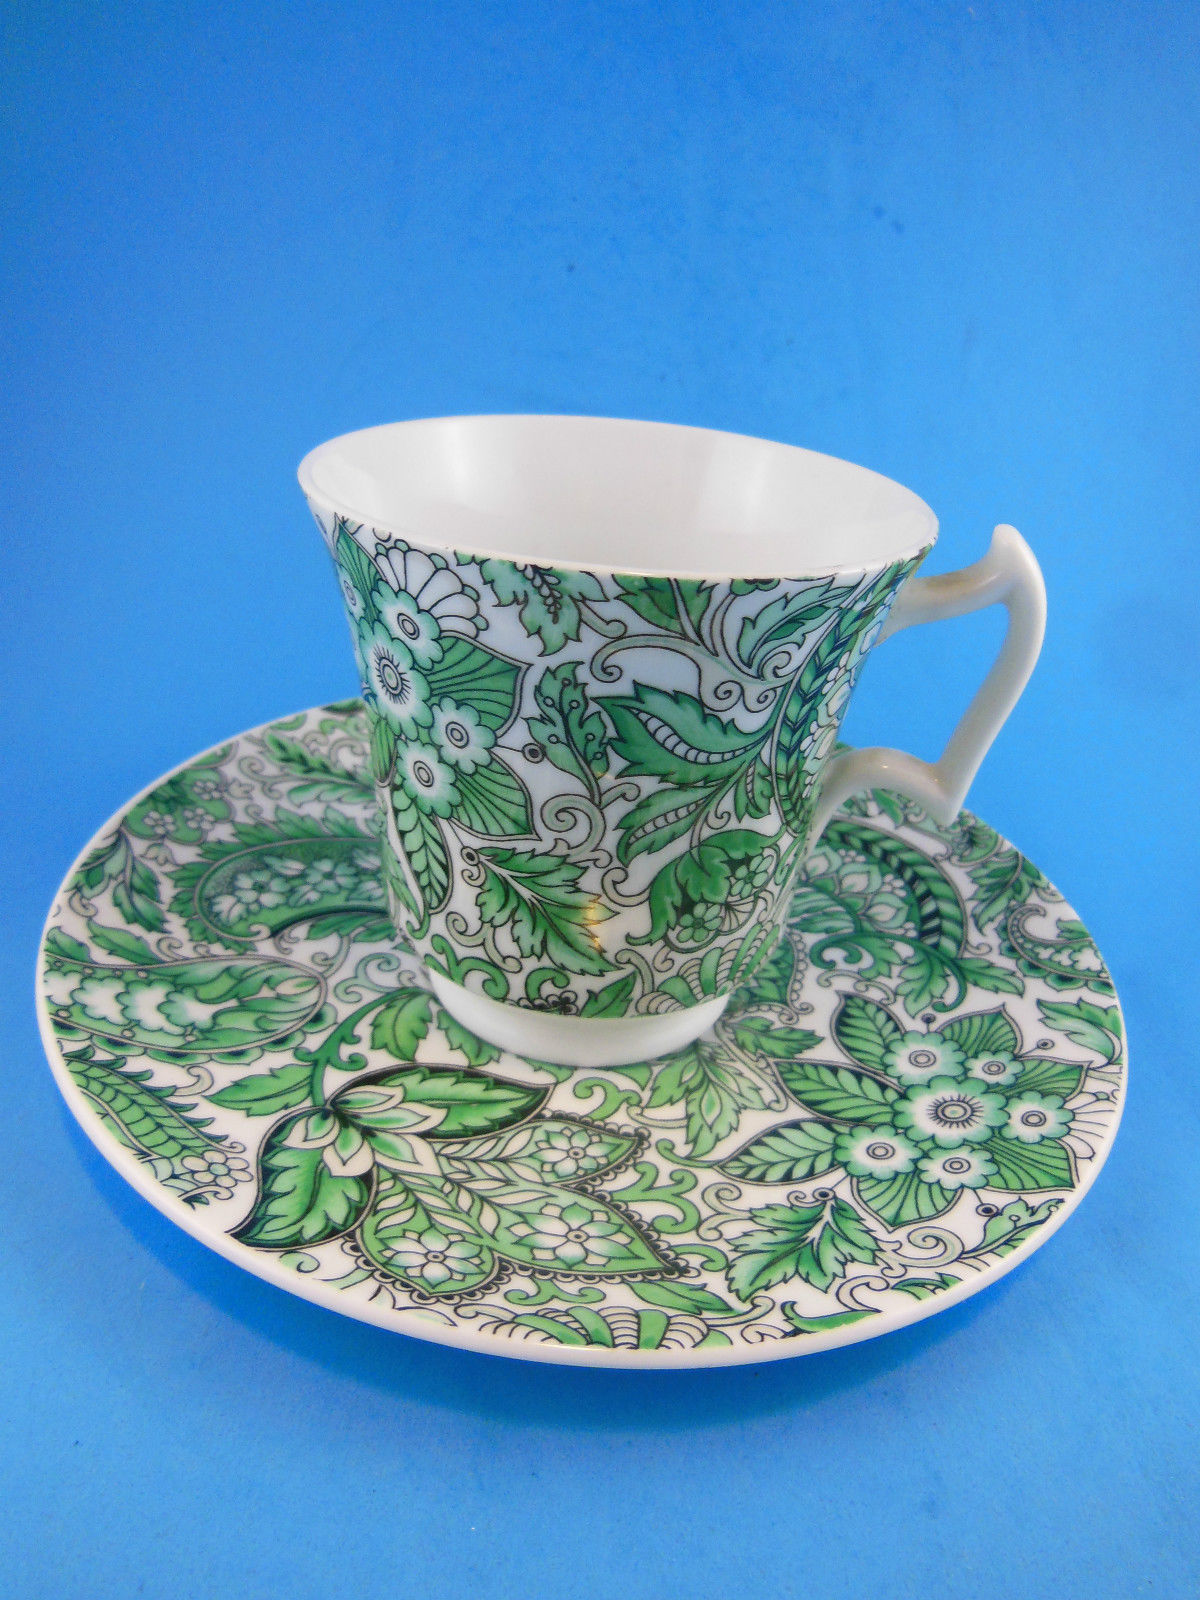 Primary image for Royal Chelsea English Bone China Cup and Saucer Green Paisley Floral England